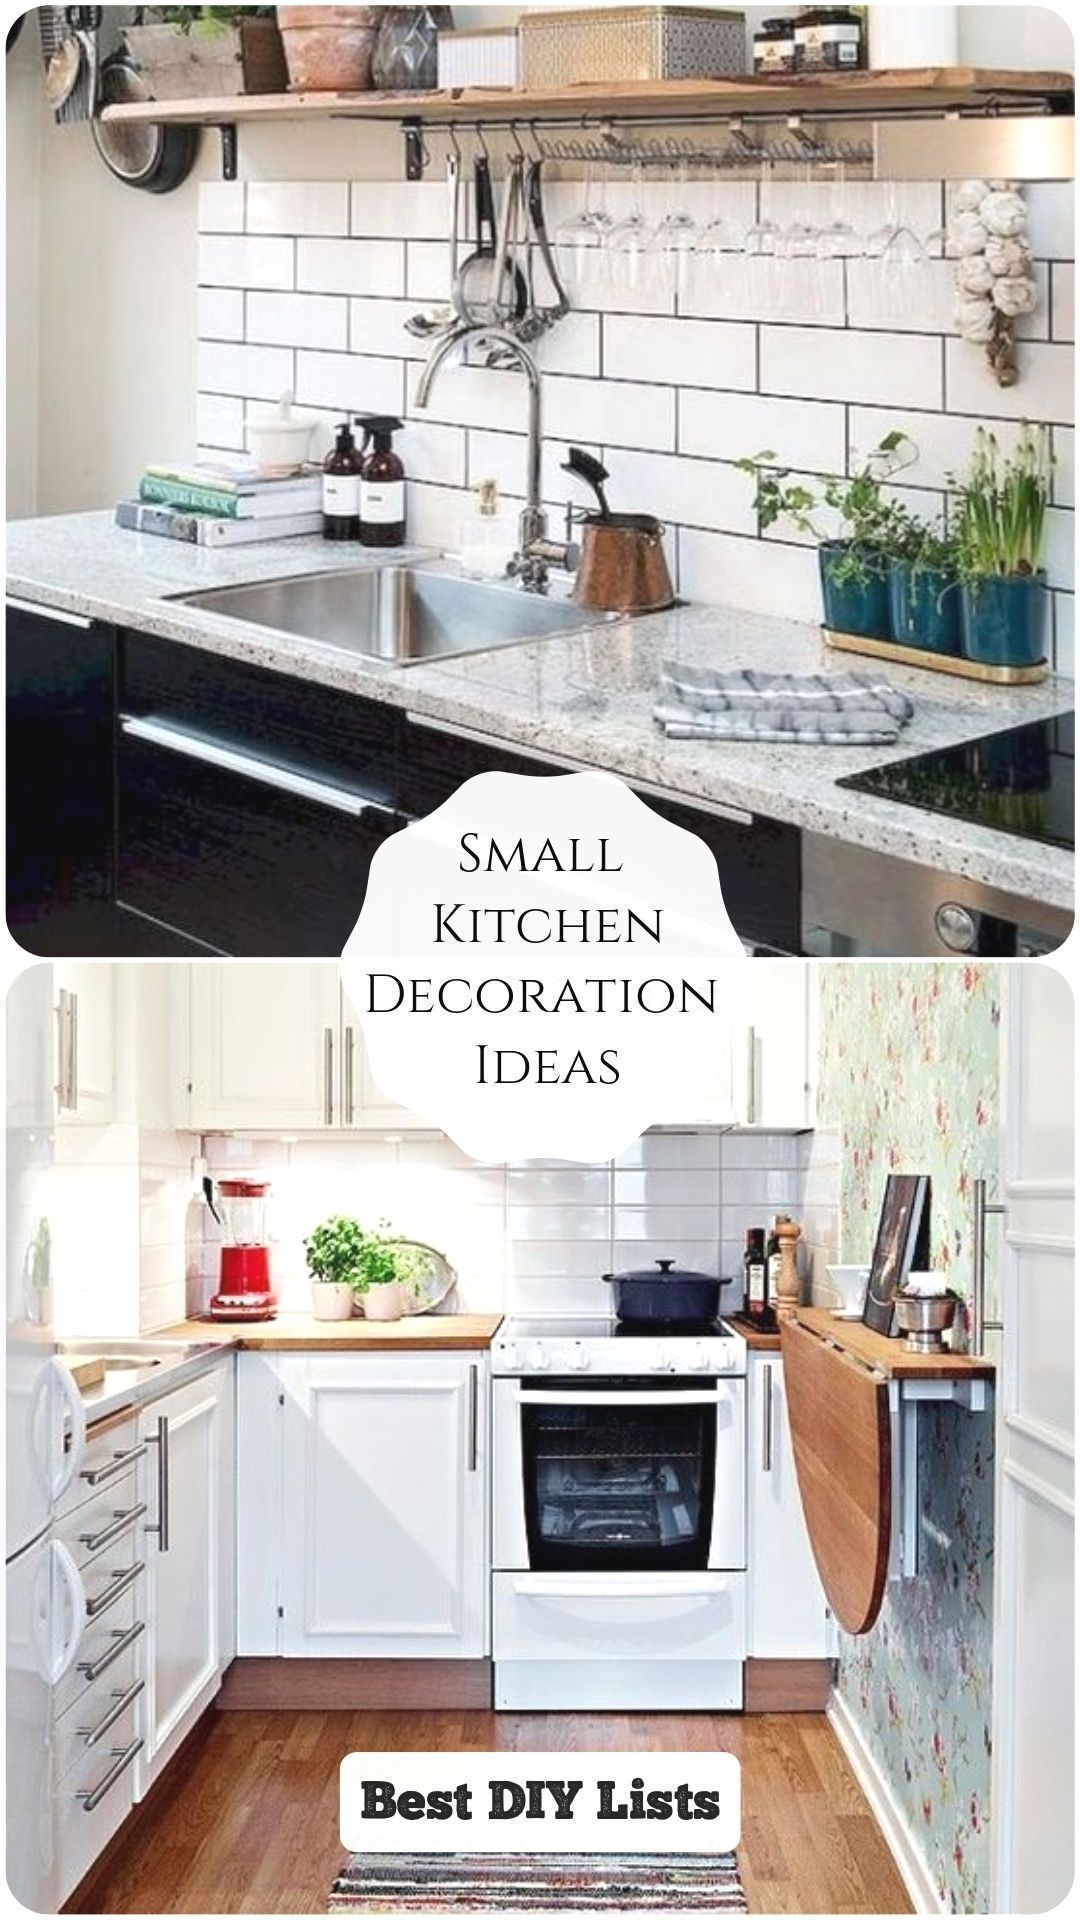 Kitchen Decor Tips10 Clever Ideas For Small Kitchen Decoration #kitchendecoration #kitchen #kitchendecor #kitchenremodel #homedecor #kitchentips